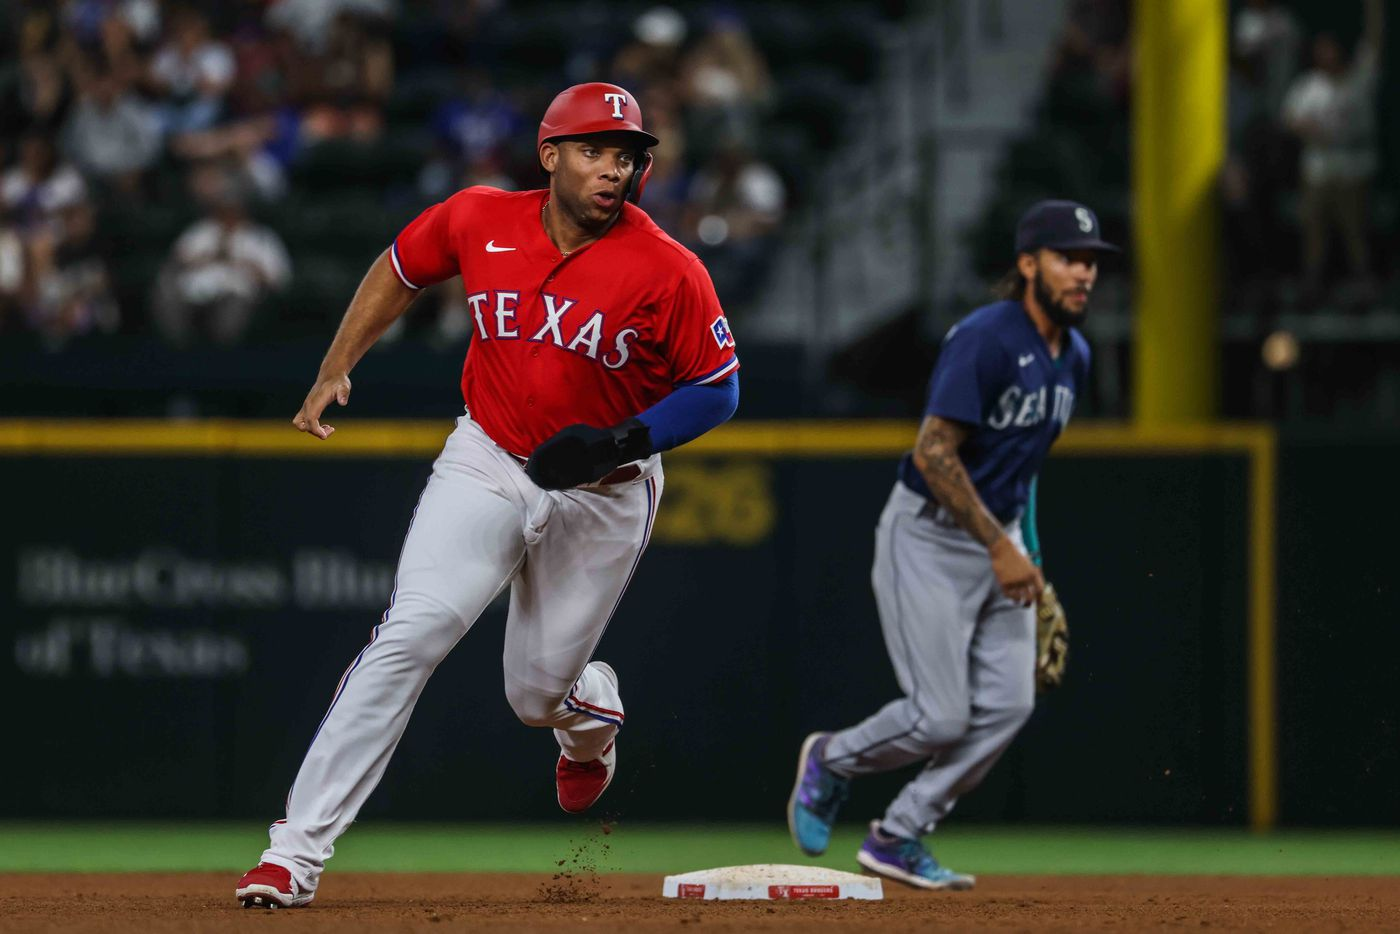 Texas Rangers Curtis Terris (83) runs to third base after Jason Martin (50) makes a hit against Seattle Mariners during  fourth inning at Globe Life Field in Arlington, Texas, Friday, July 30, 2021. (Lola Gomez/The Dallas Morning News)